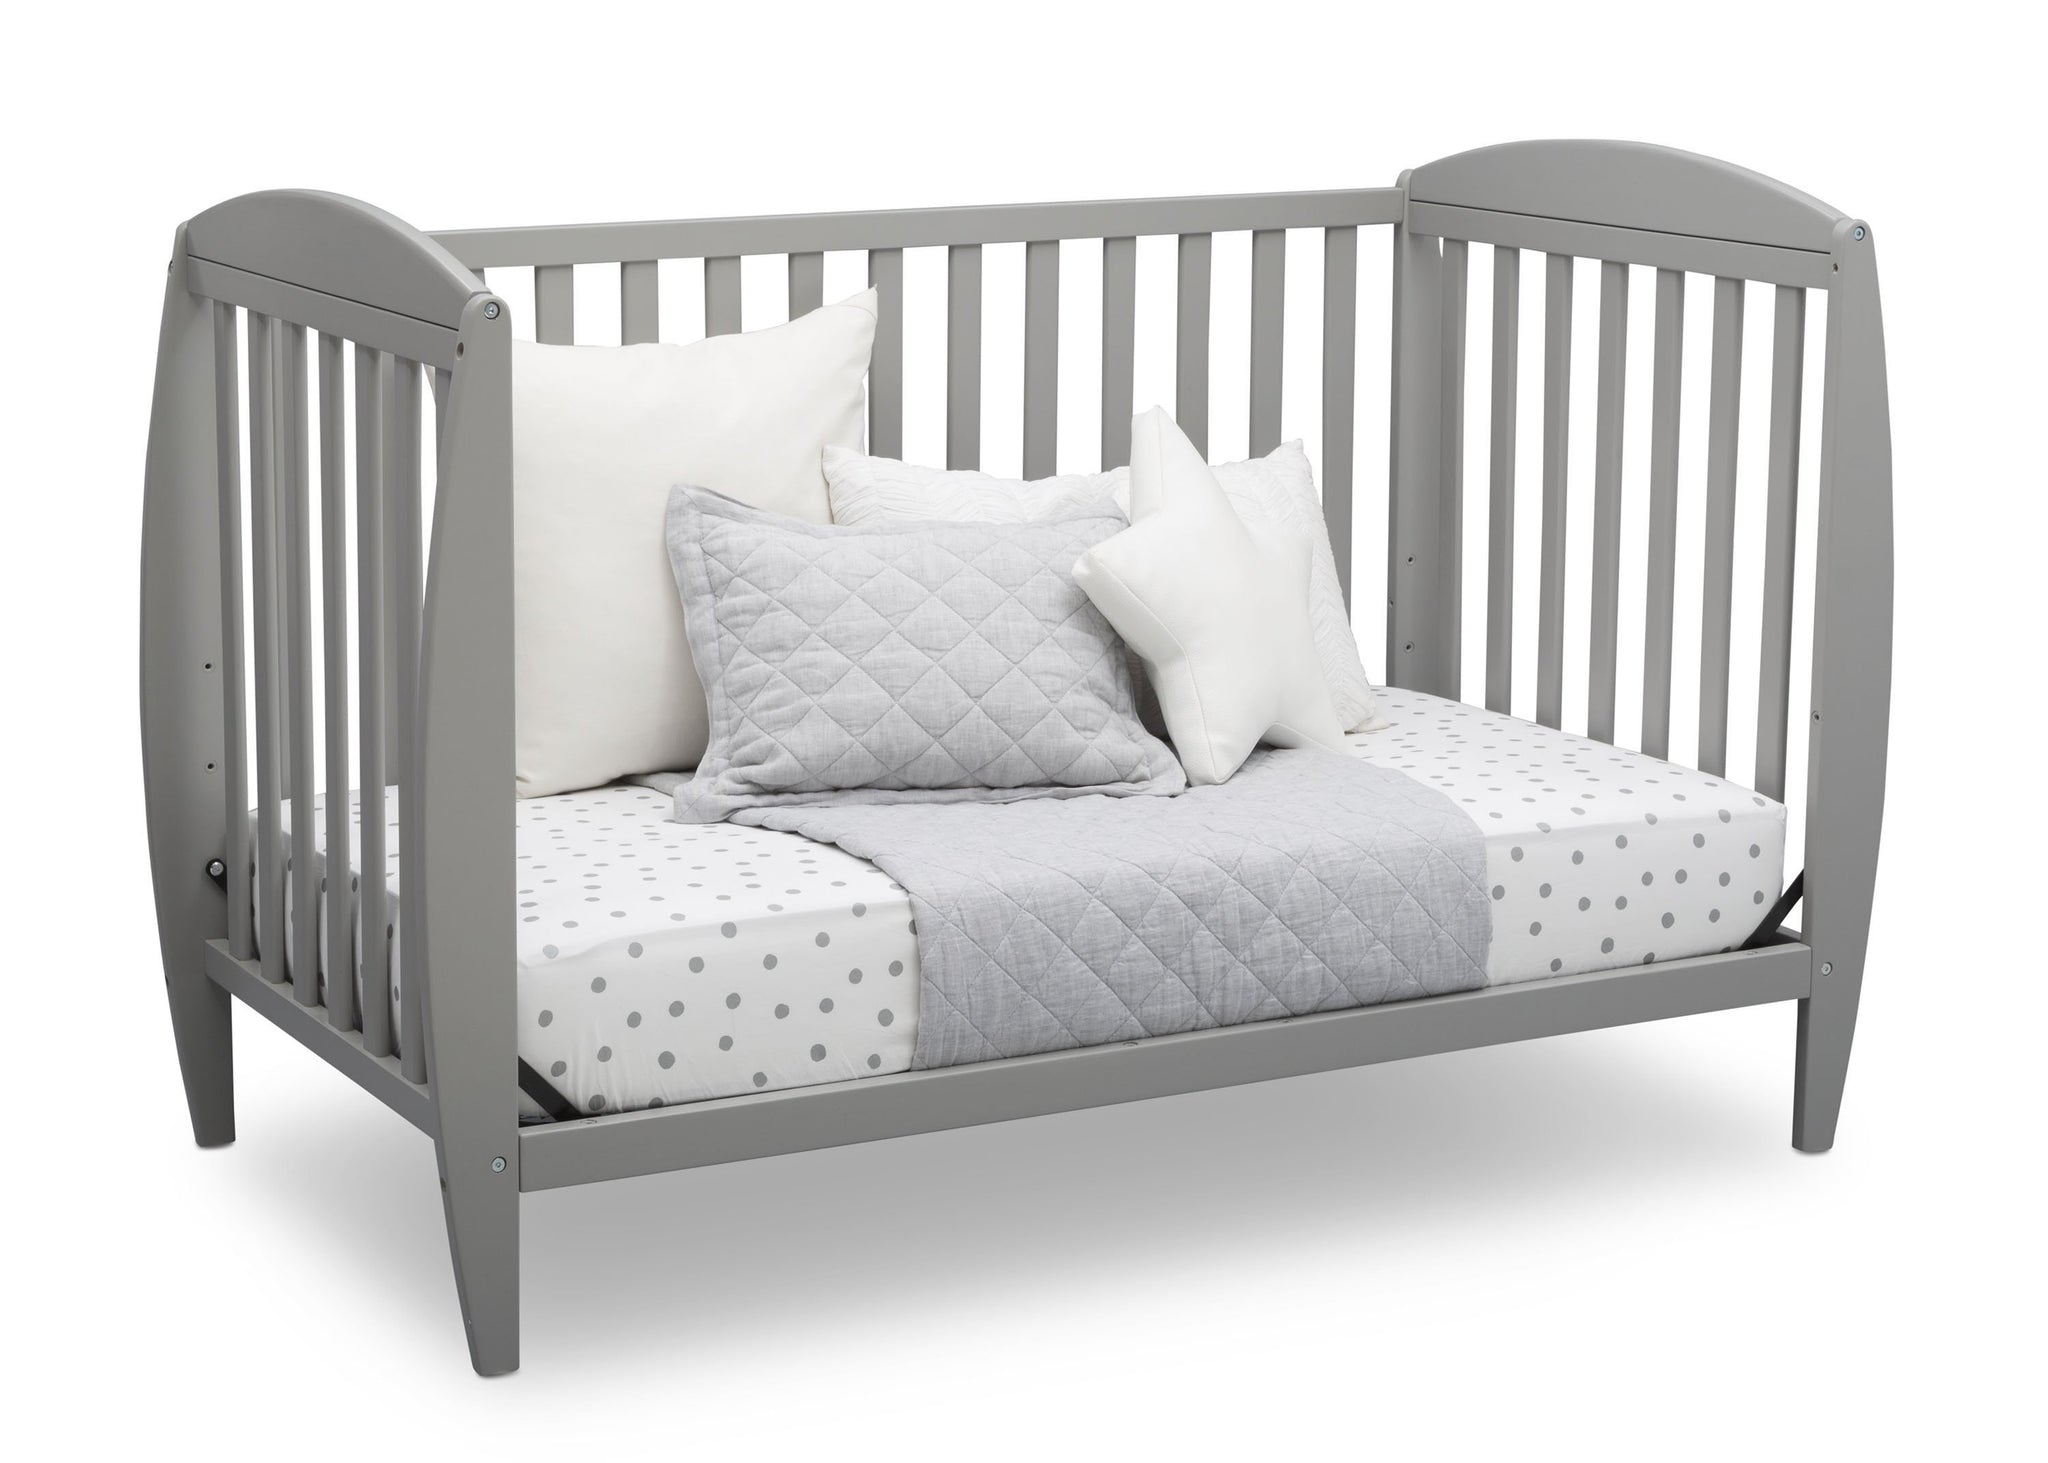 Delta Children Grey (026) Taylor 4-in-1 Convertible Crib (W10040), Silo Daybed, a4a